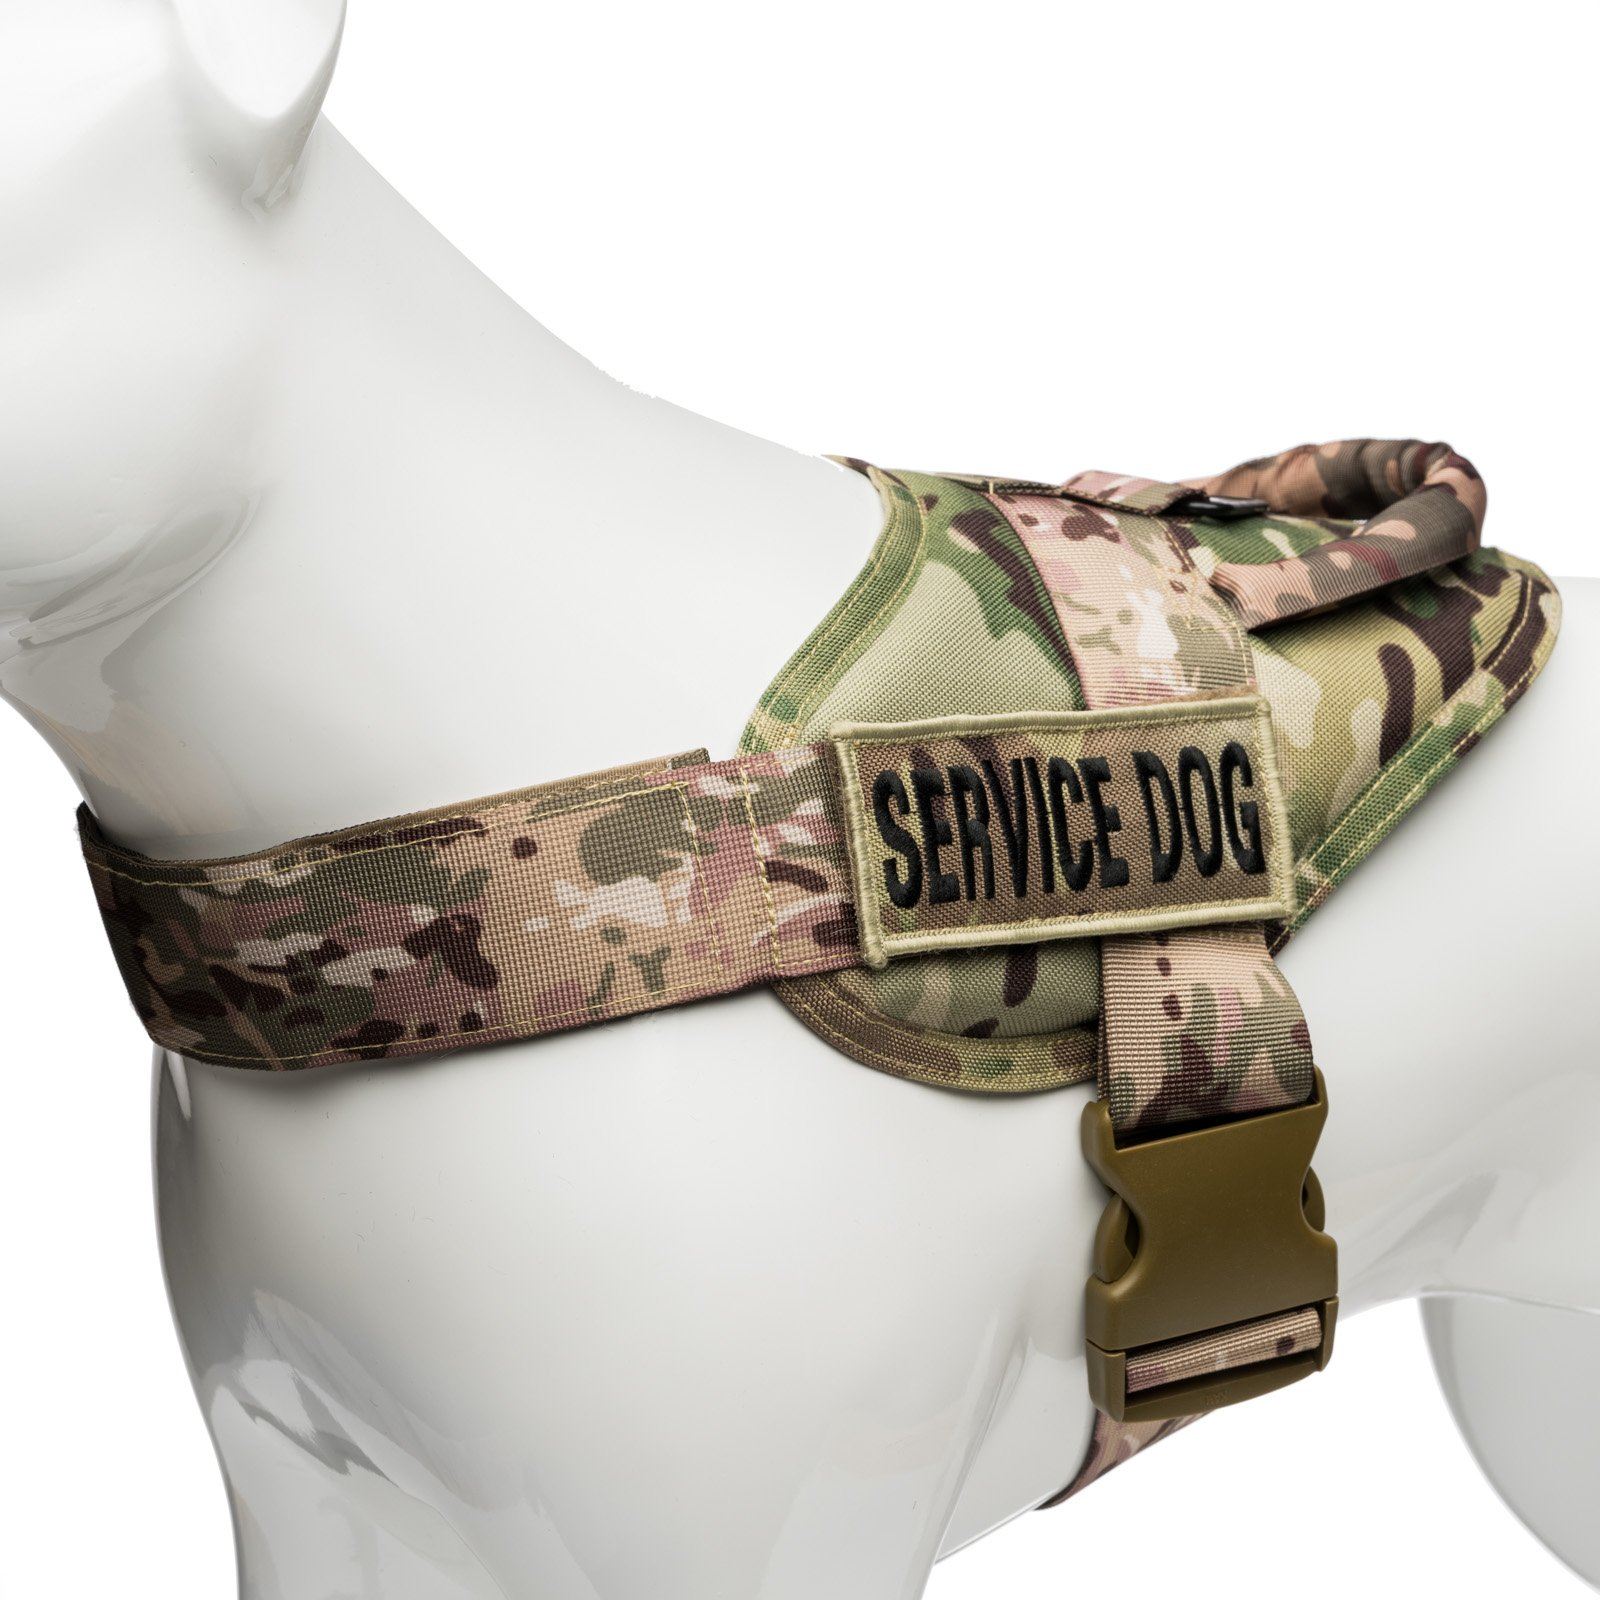 Industrial Puppy Camo Service Dog Vest Harness with Service Dog Patches – Military Dog Animal Harness Gear Kit – Adjustable Hook & Loop Strap – Jacket Loop Strips for Patch Accessories and Ring for Sm by Industrial Puppy (Image #1)